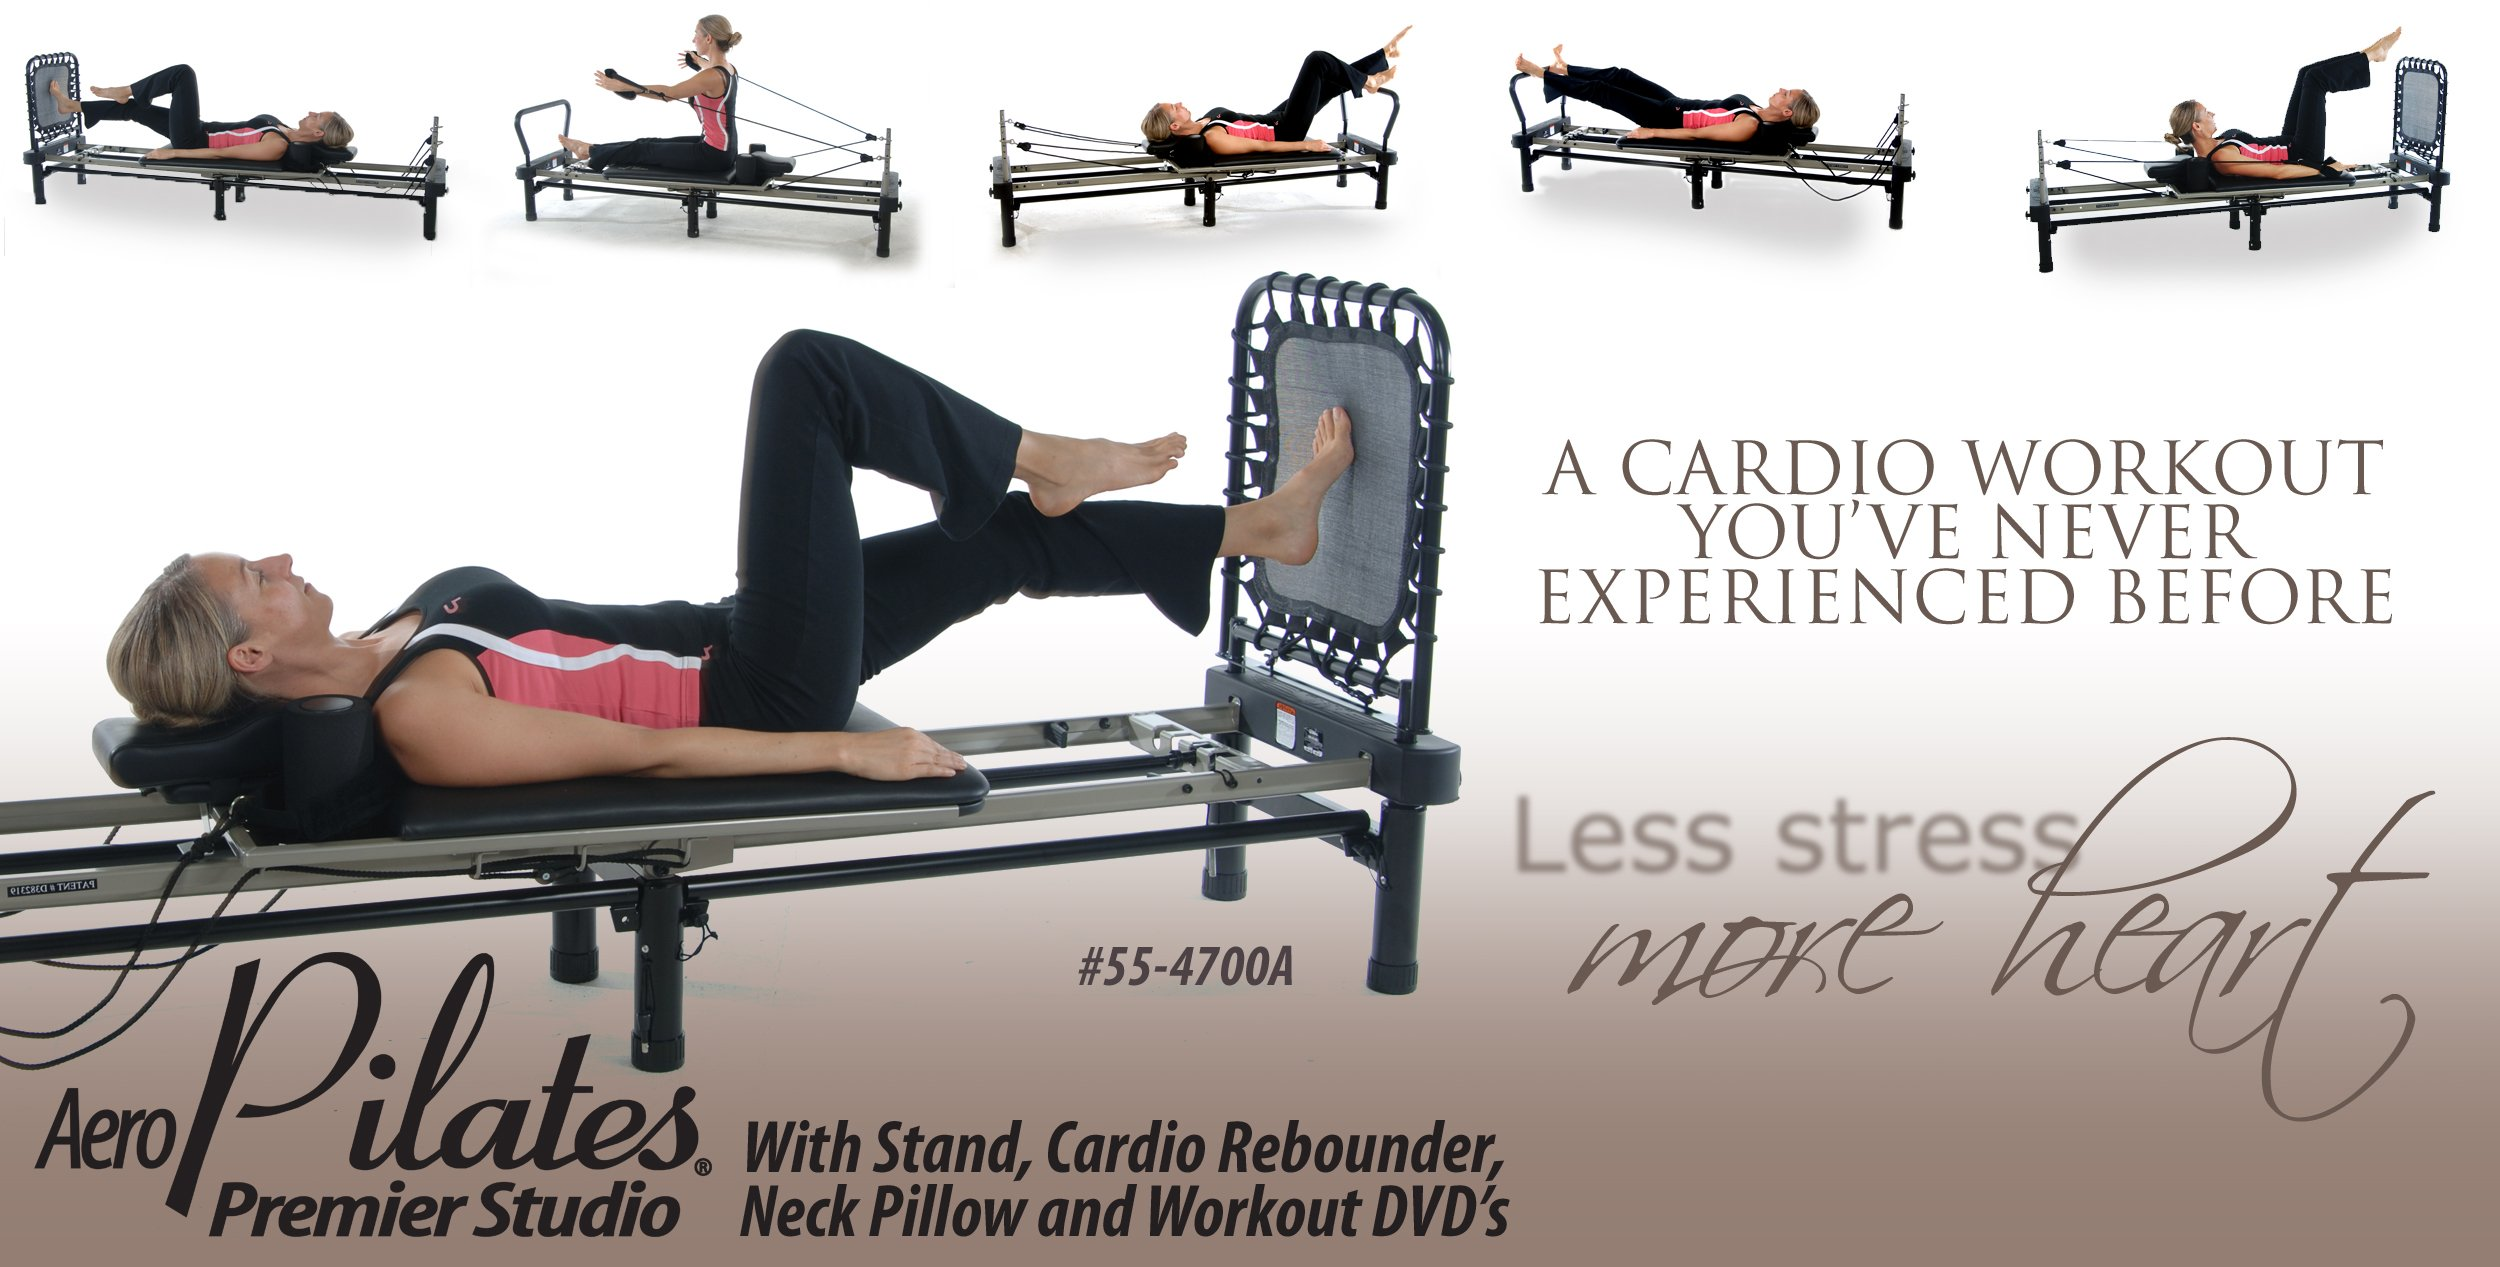 Stamina AeroPilates 700 Premier Reformer with Stand, Cardio Rebounder, Neck Pillow and DVDs by Stamina (Image #7)